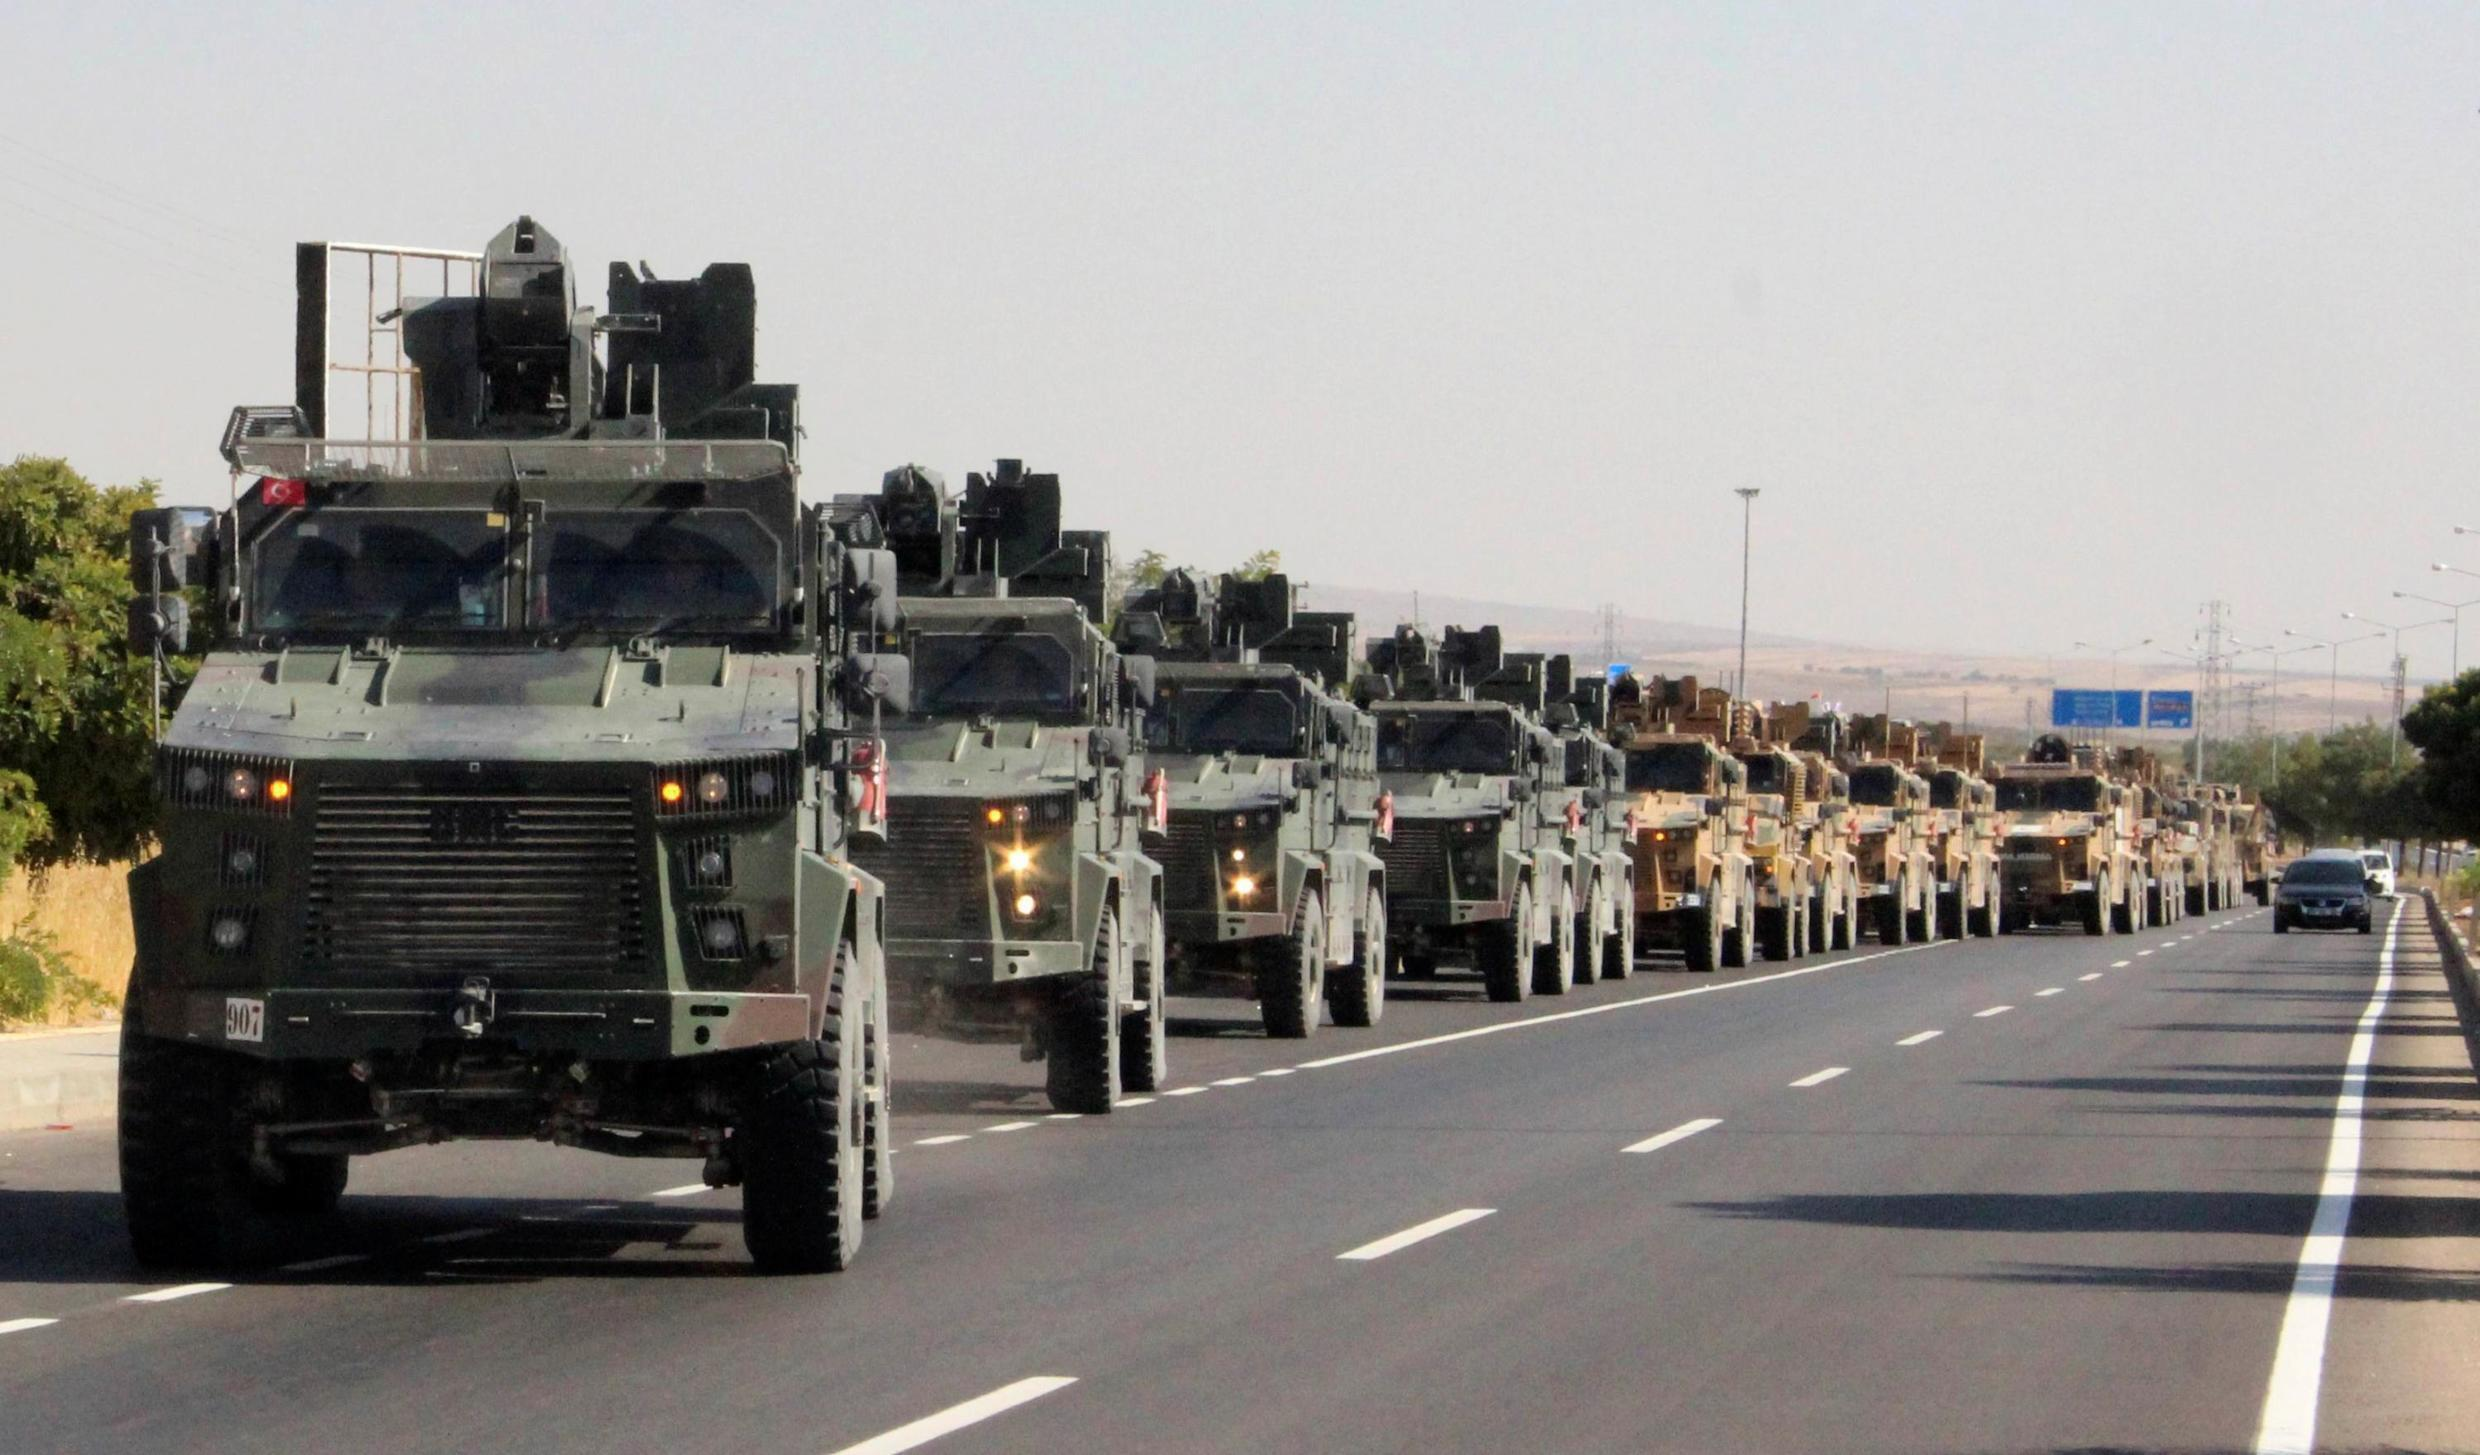 A Turkish miltary convoy is pictured in Kilis near the Turkish-Syrian border, Turkey, October 9, 2019.